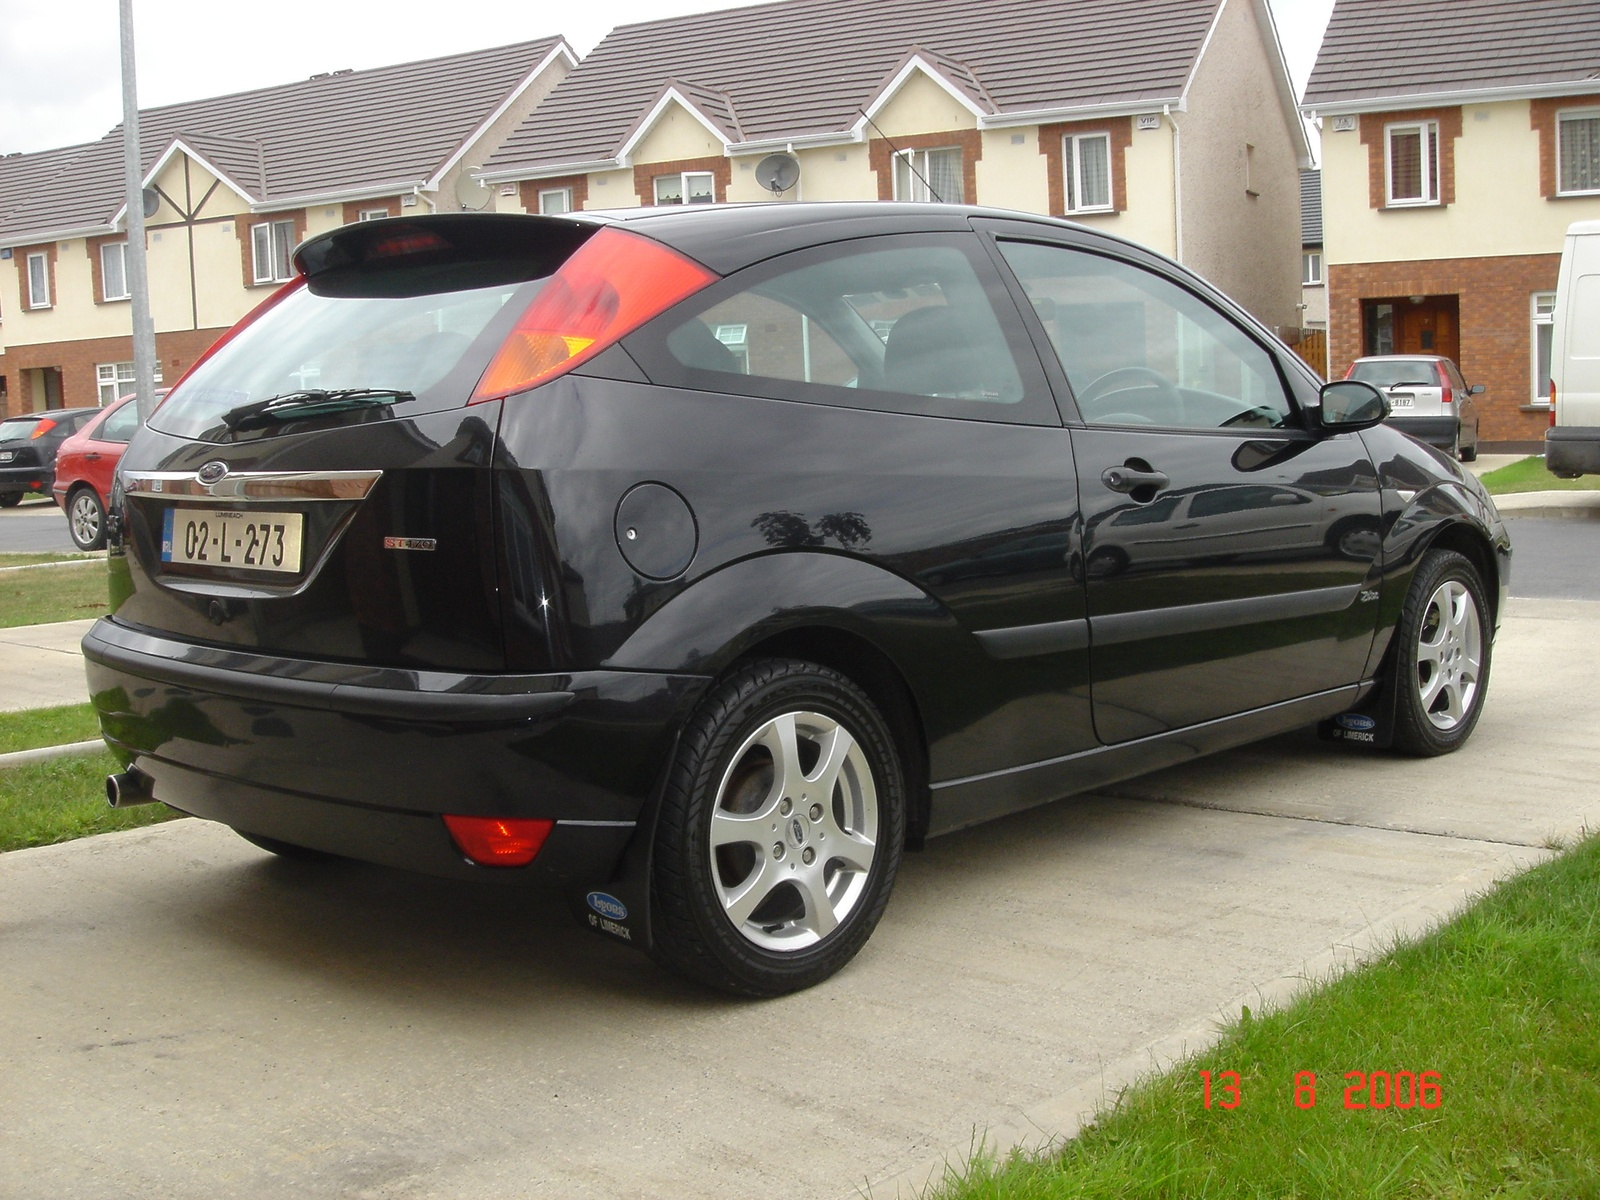 2002 ford focus information and photos zombiedrive. Black Bedroom Furniture Sets. Home Design Ideas